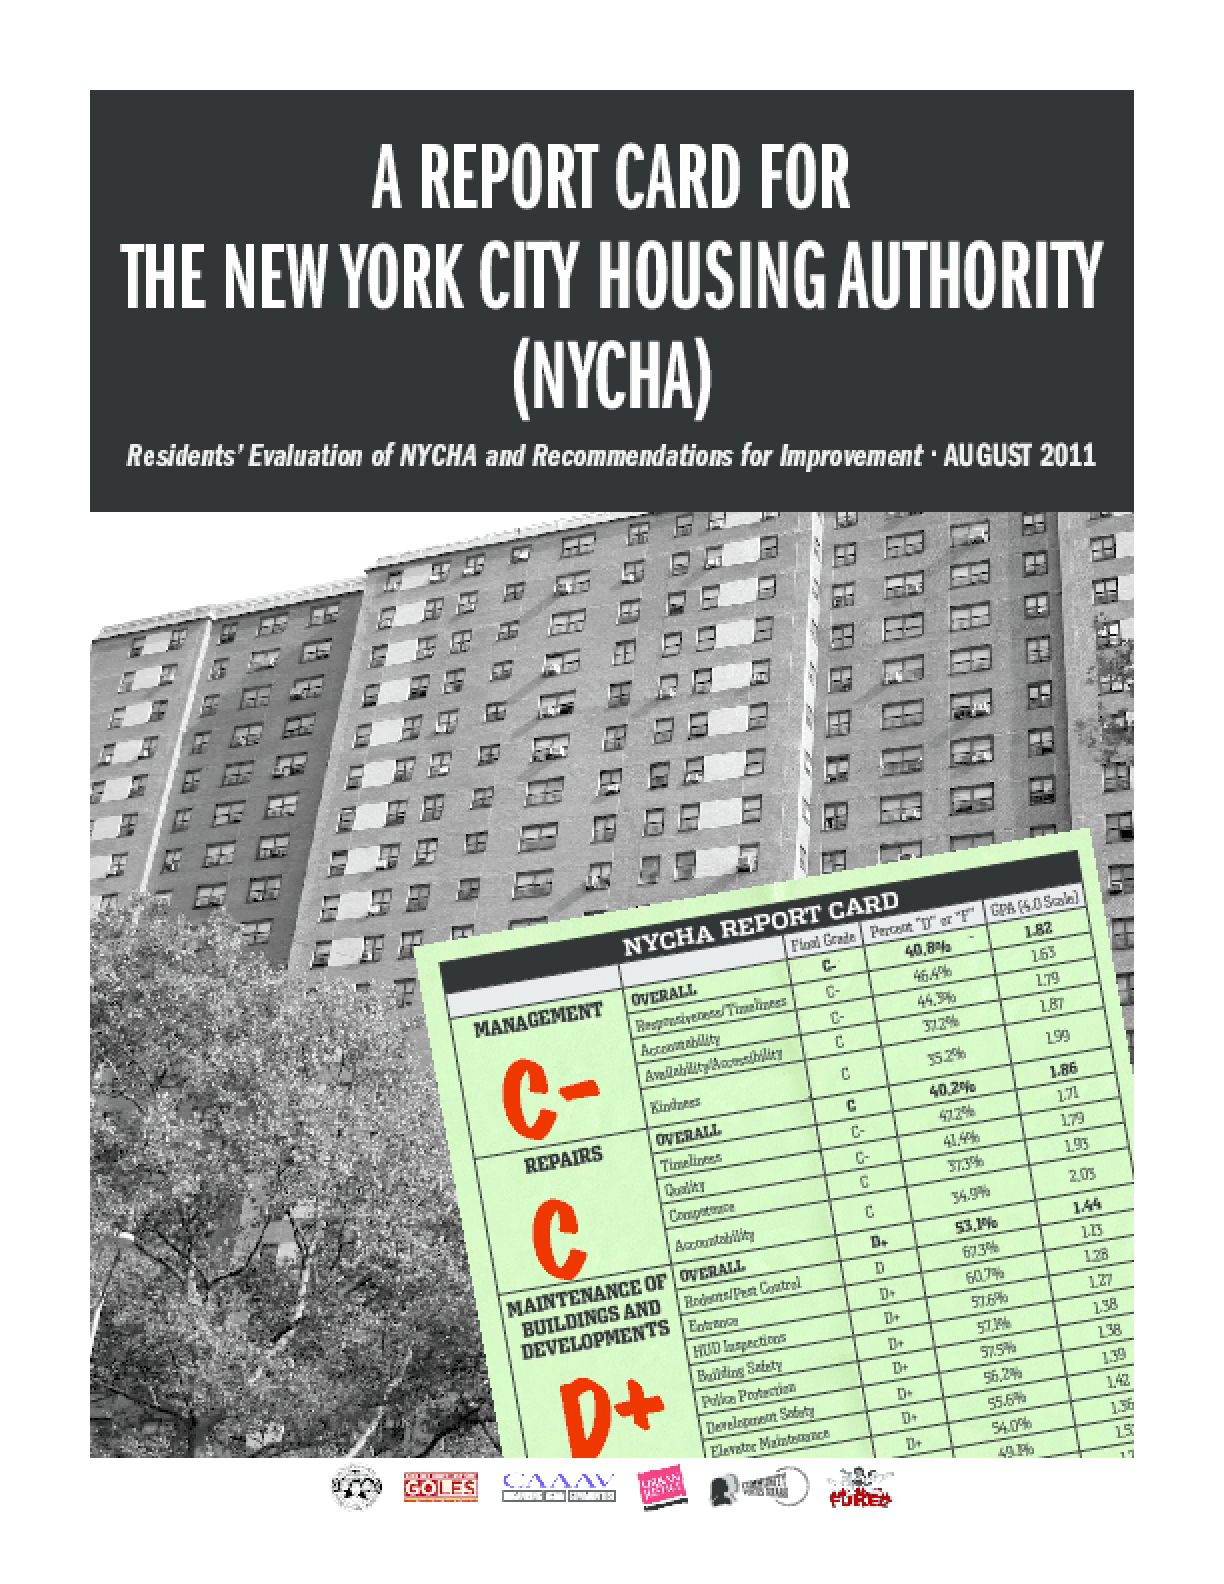 A Report Card for the New York City Housing Authority (NYCHA): Residents' Evaluation of NYCHA and Recommendations for Improvement